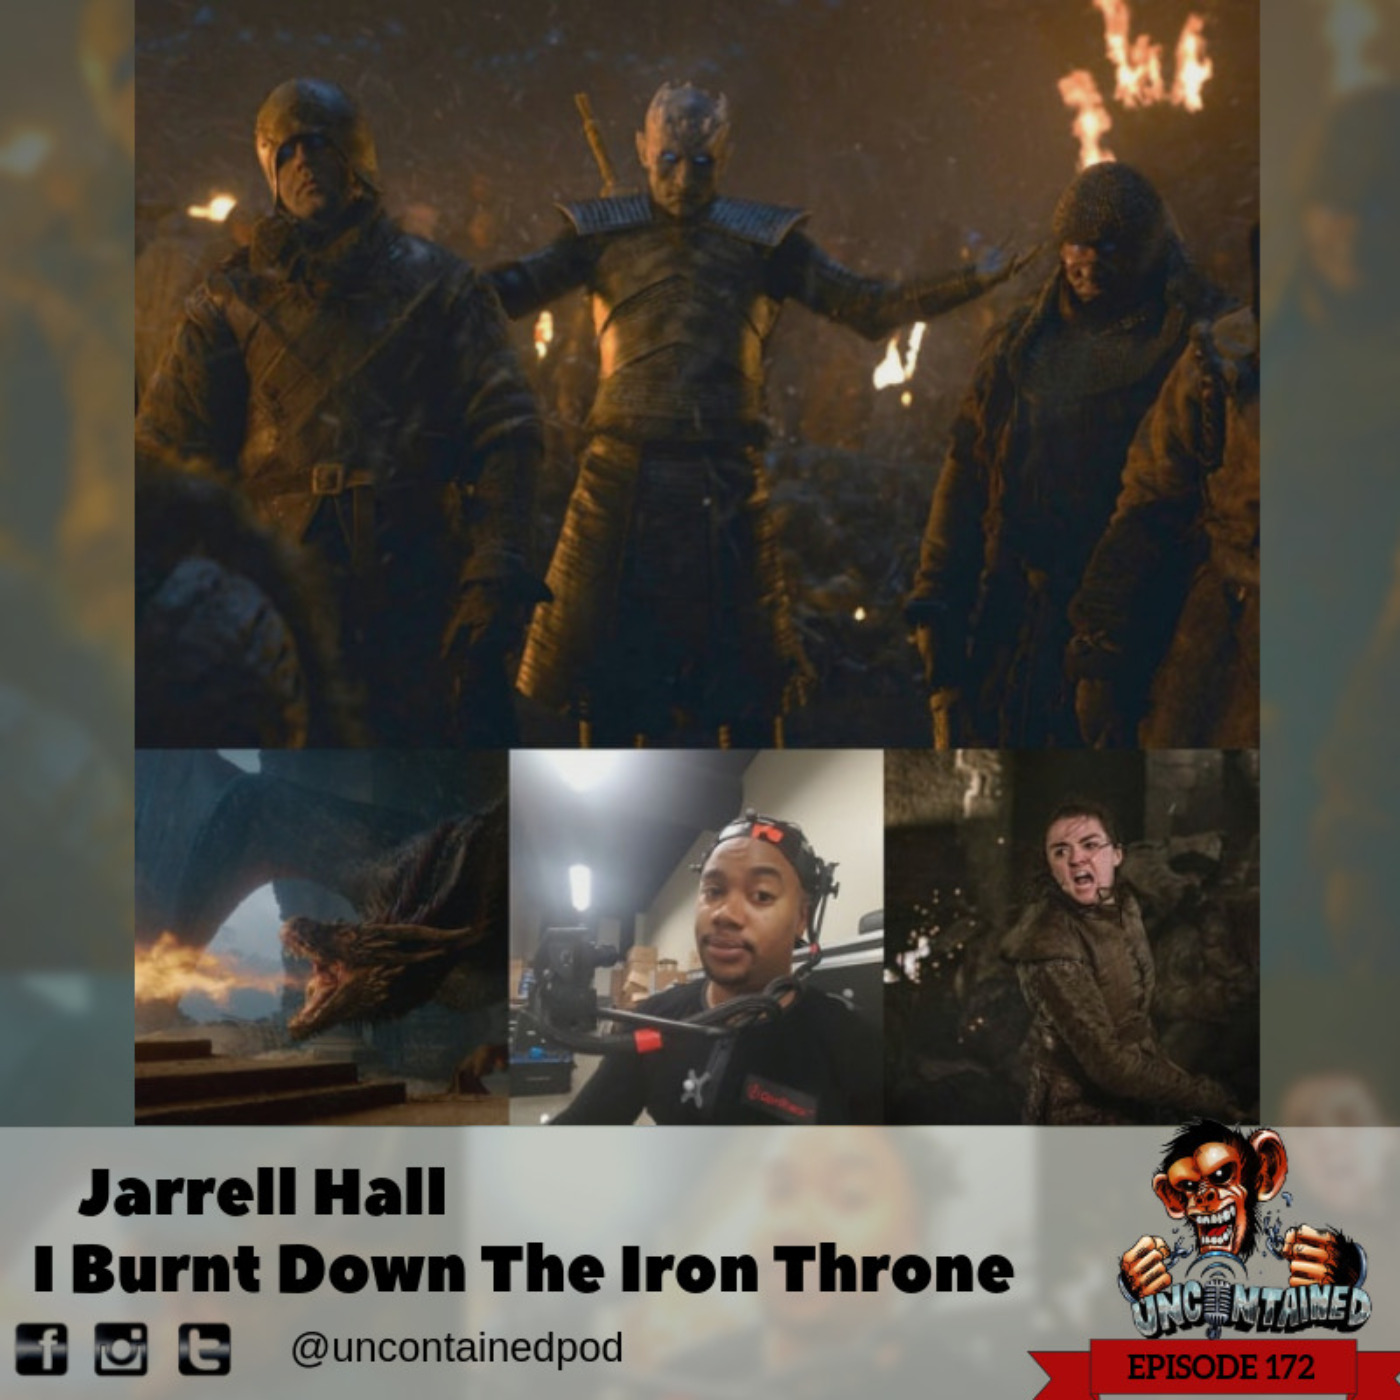 Episode 172: Jarrell Hall - I Burnt Down The Iron Throne